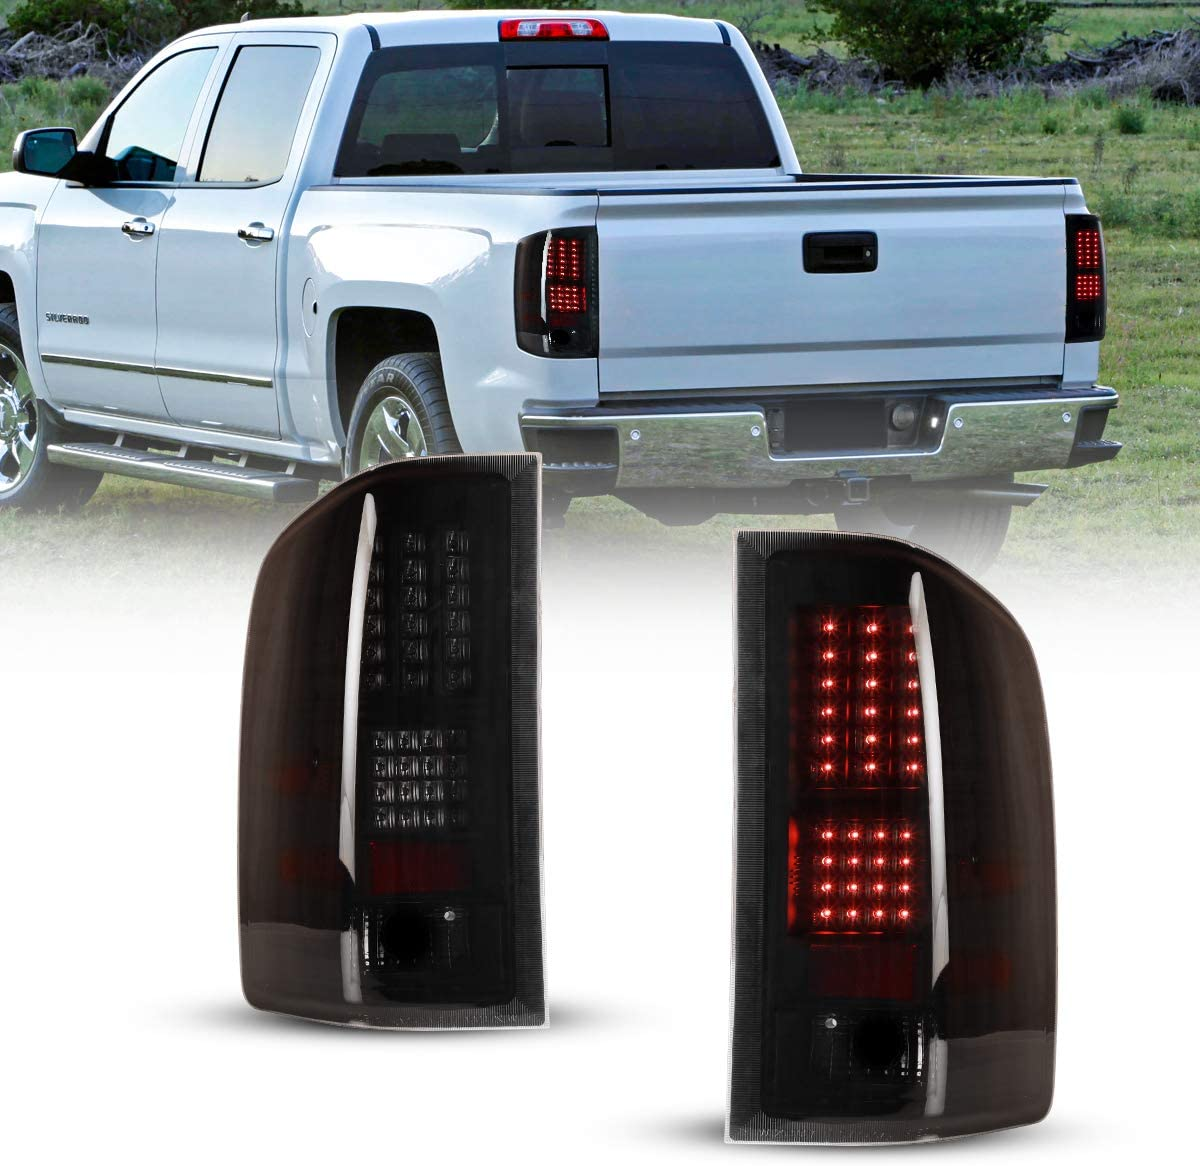 LED Tail Light Assembly for 08-14 Silverado1500 Chevy Year-end annual account Ch Ranking TOP16 08-13